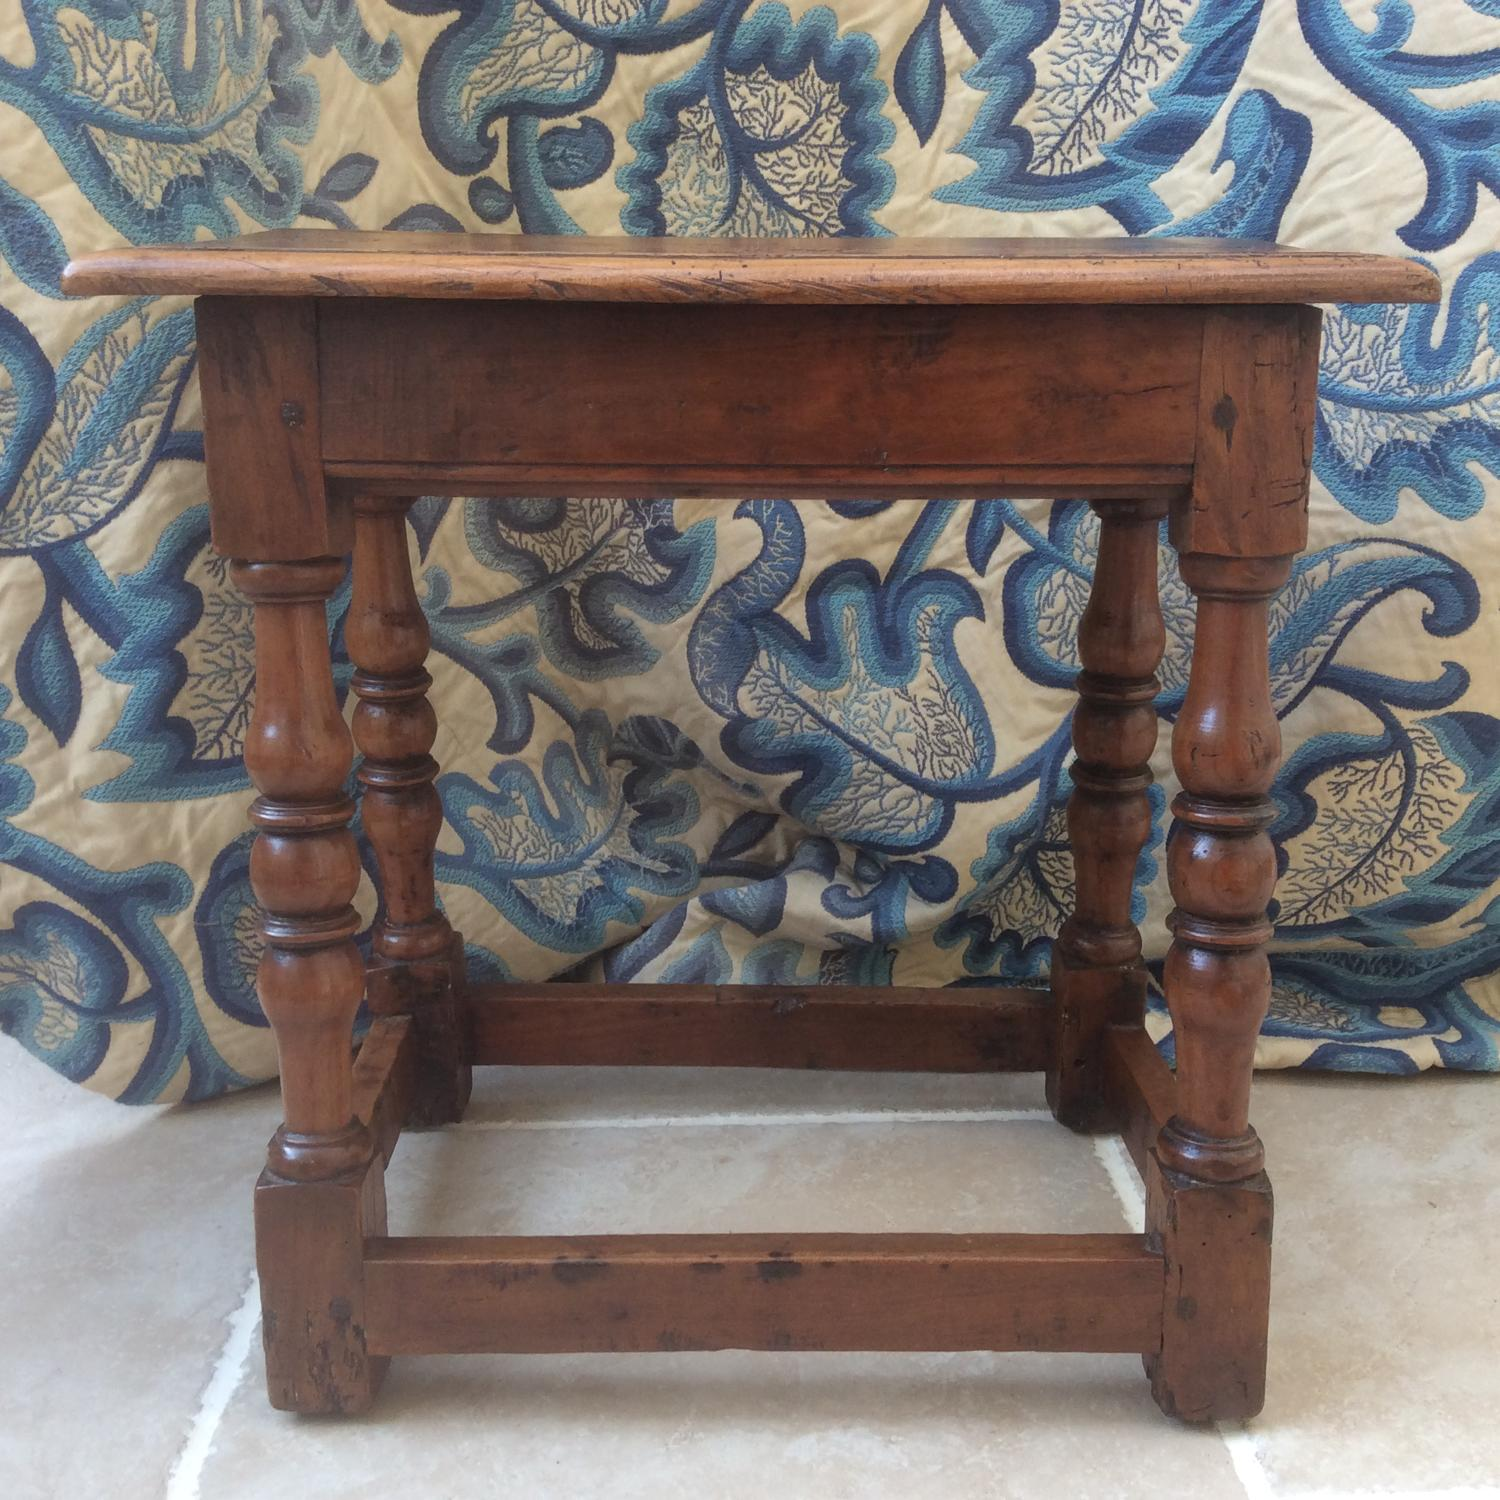 Early 18th century fruitwood joint stool